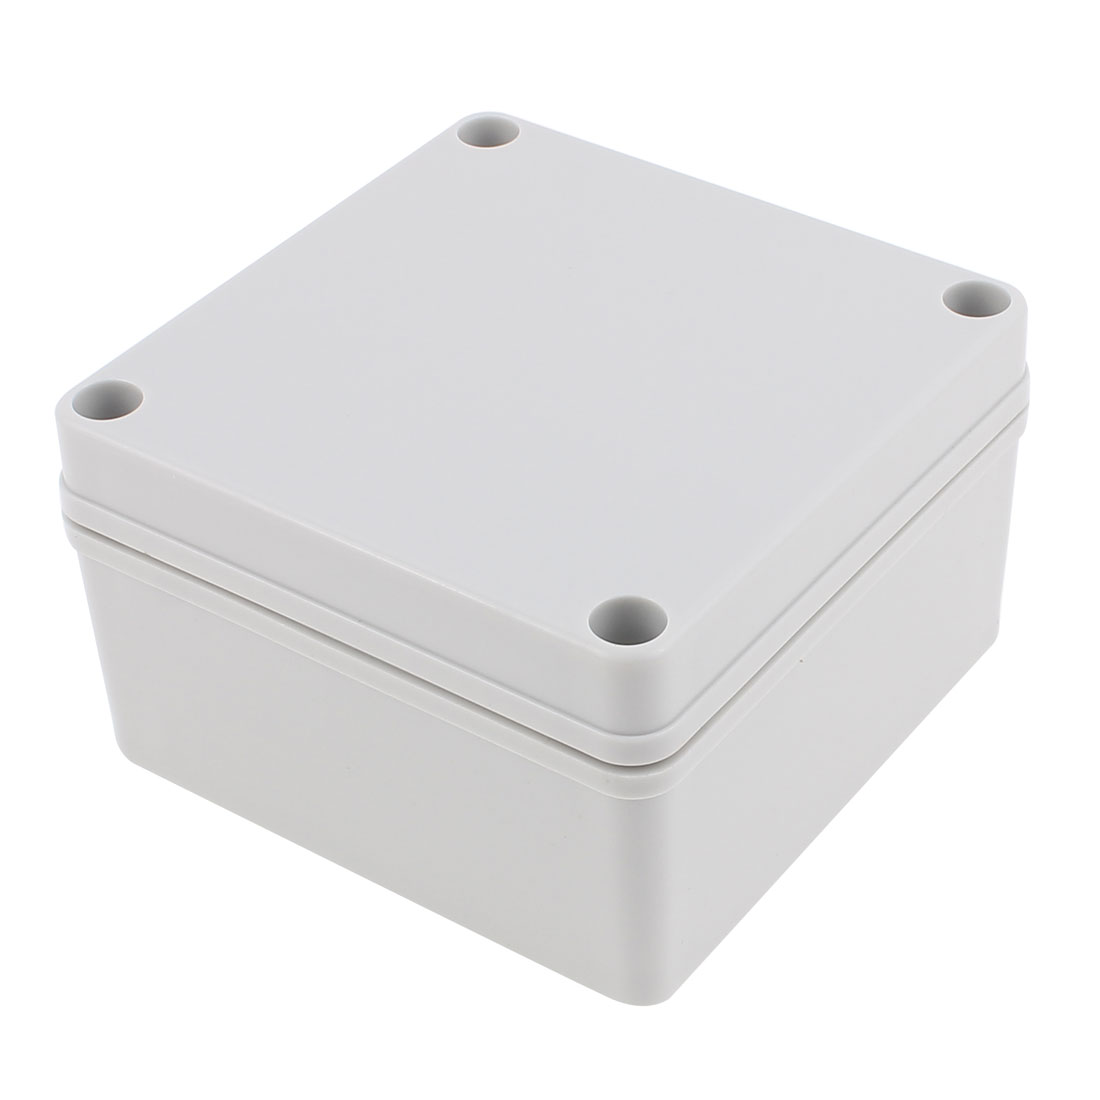 125 x 125 x 75mm Dustproof IP65 Junction Box Terminal Connecting Box Enclosure